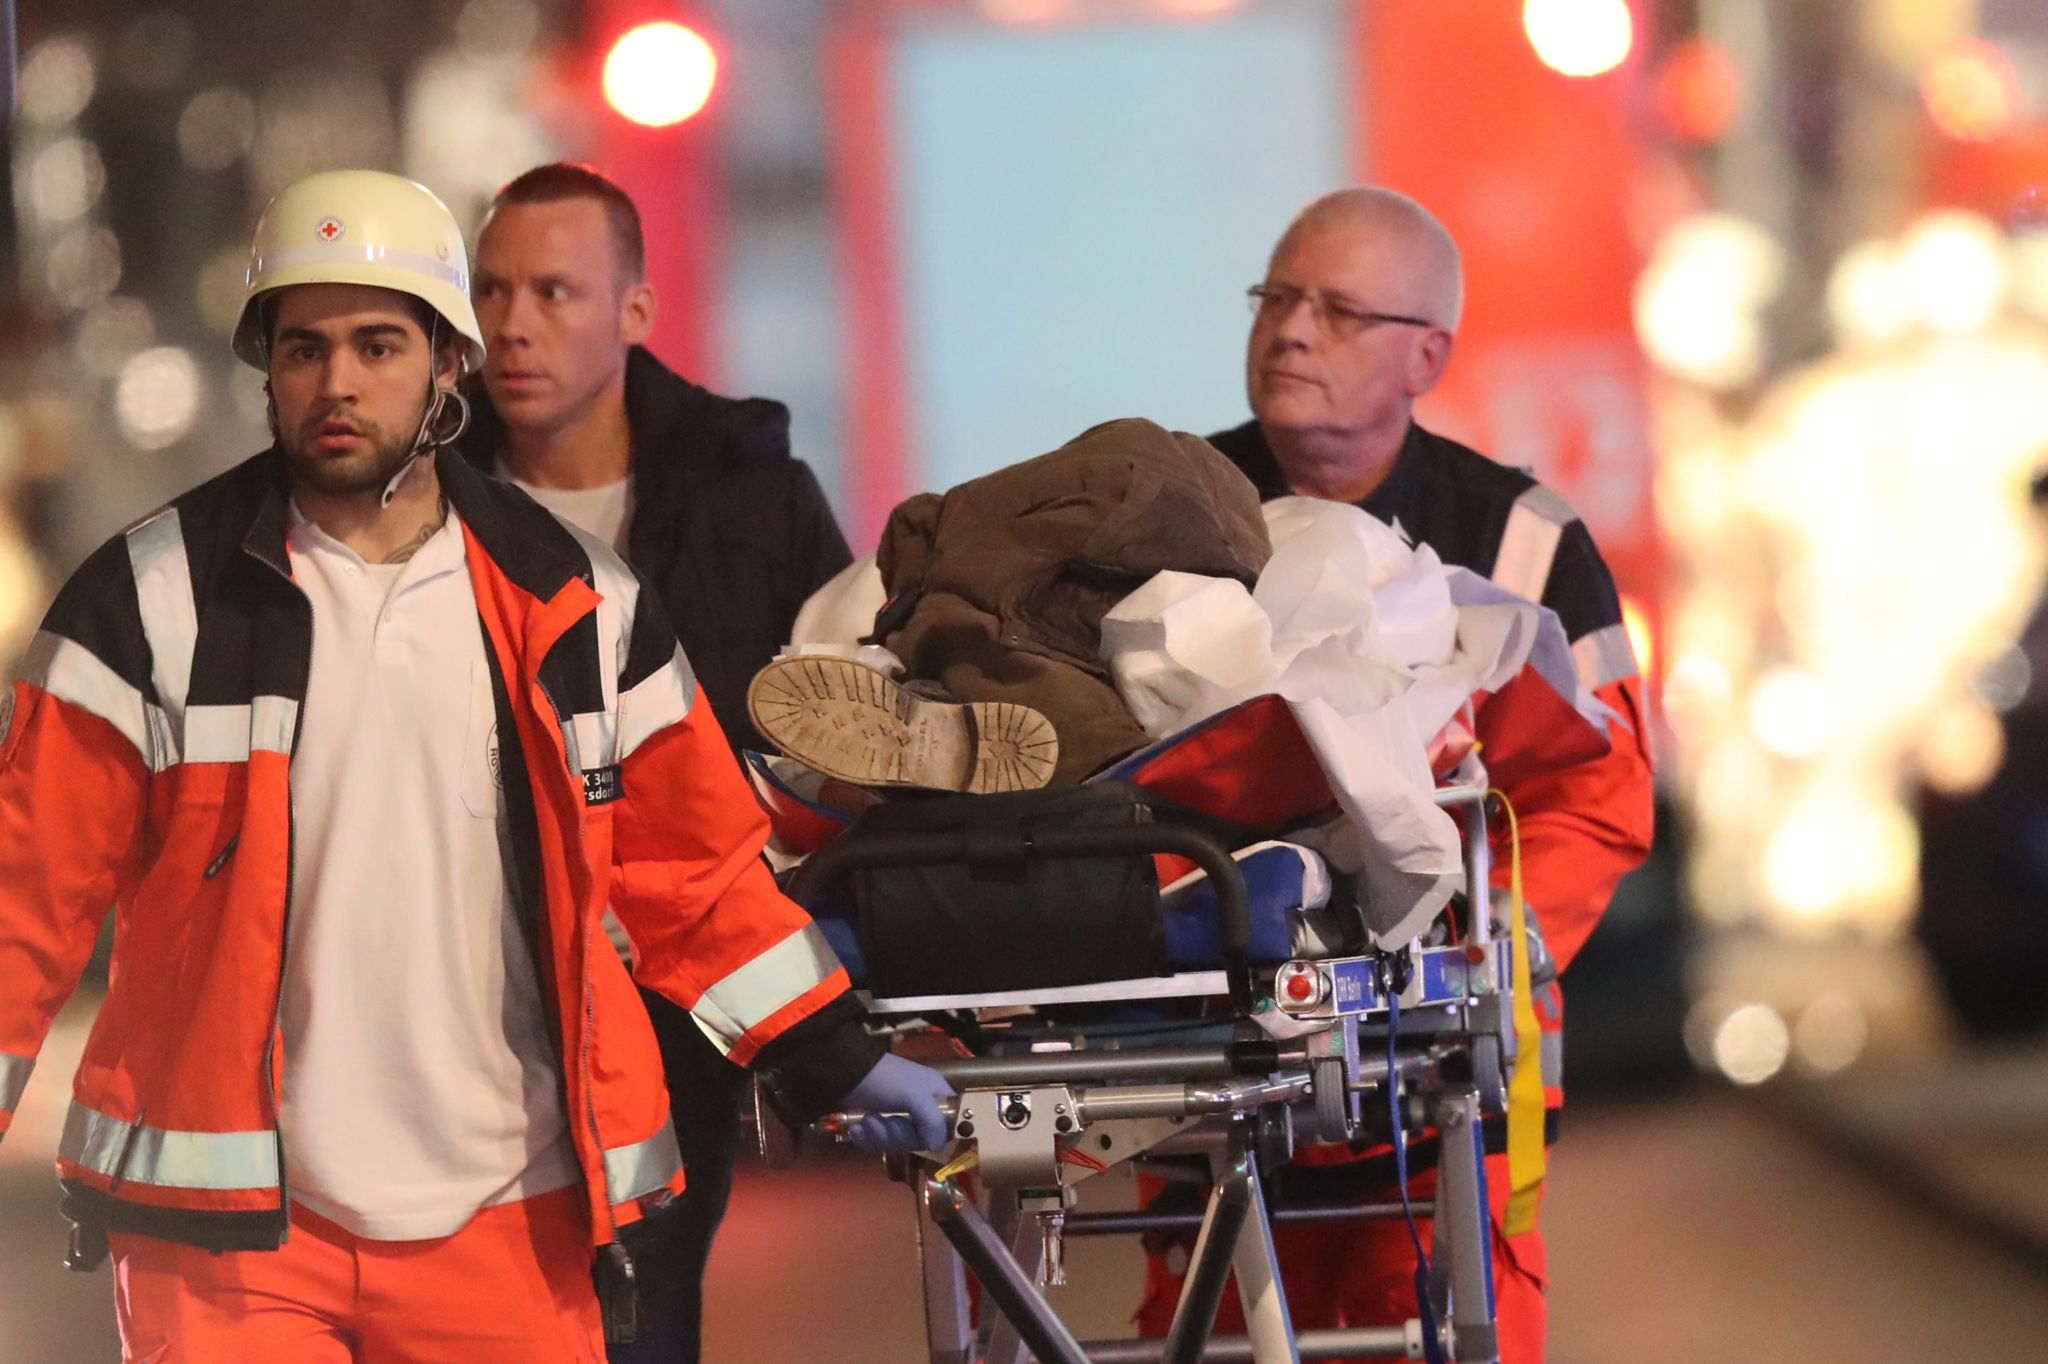 Emergency workers with an injured person in Berlin, 19 December